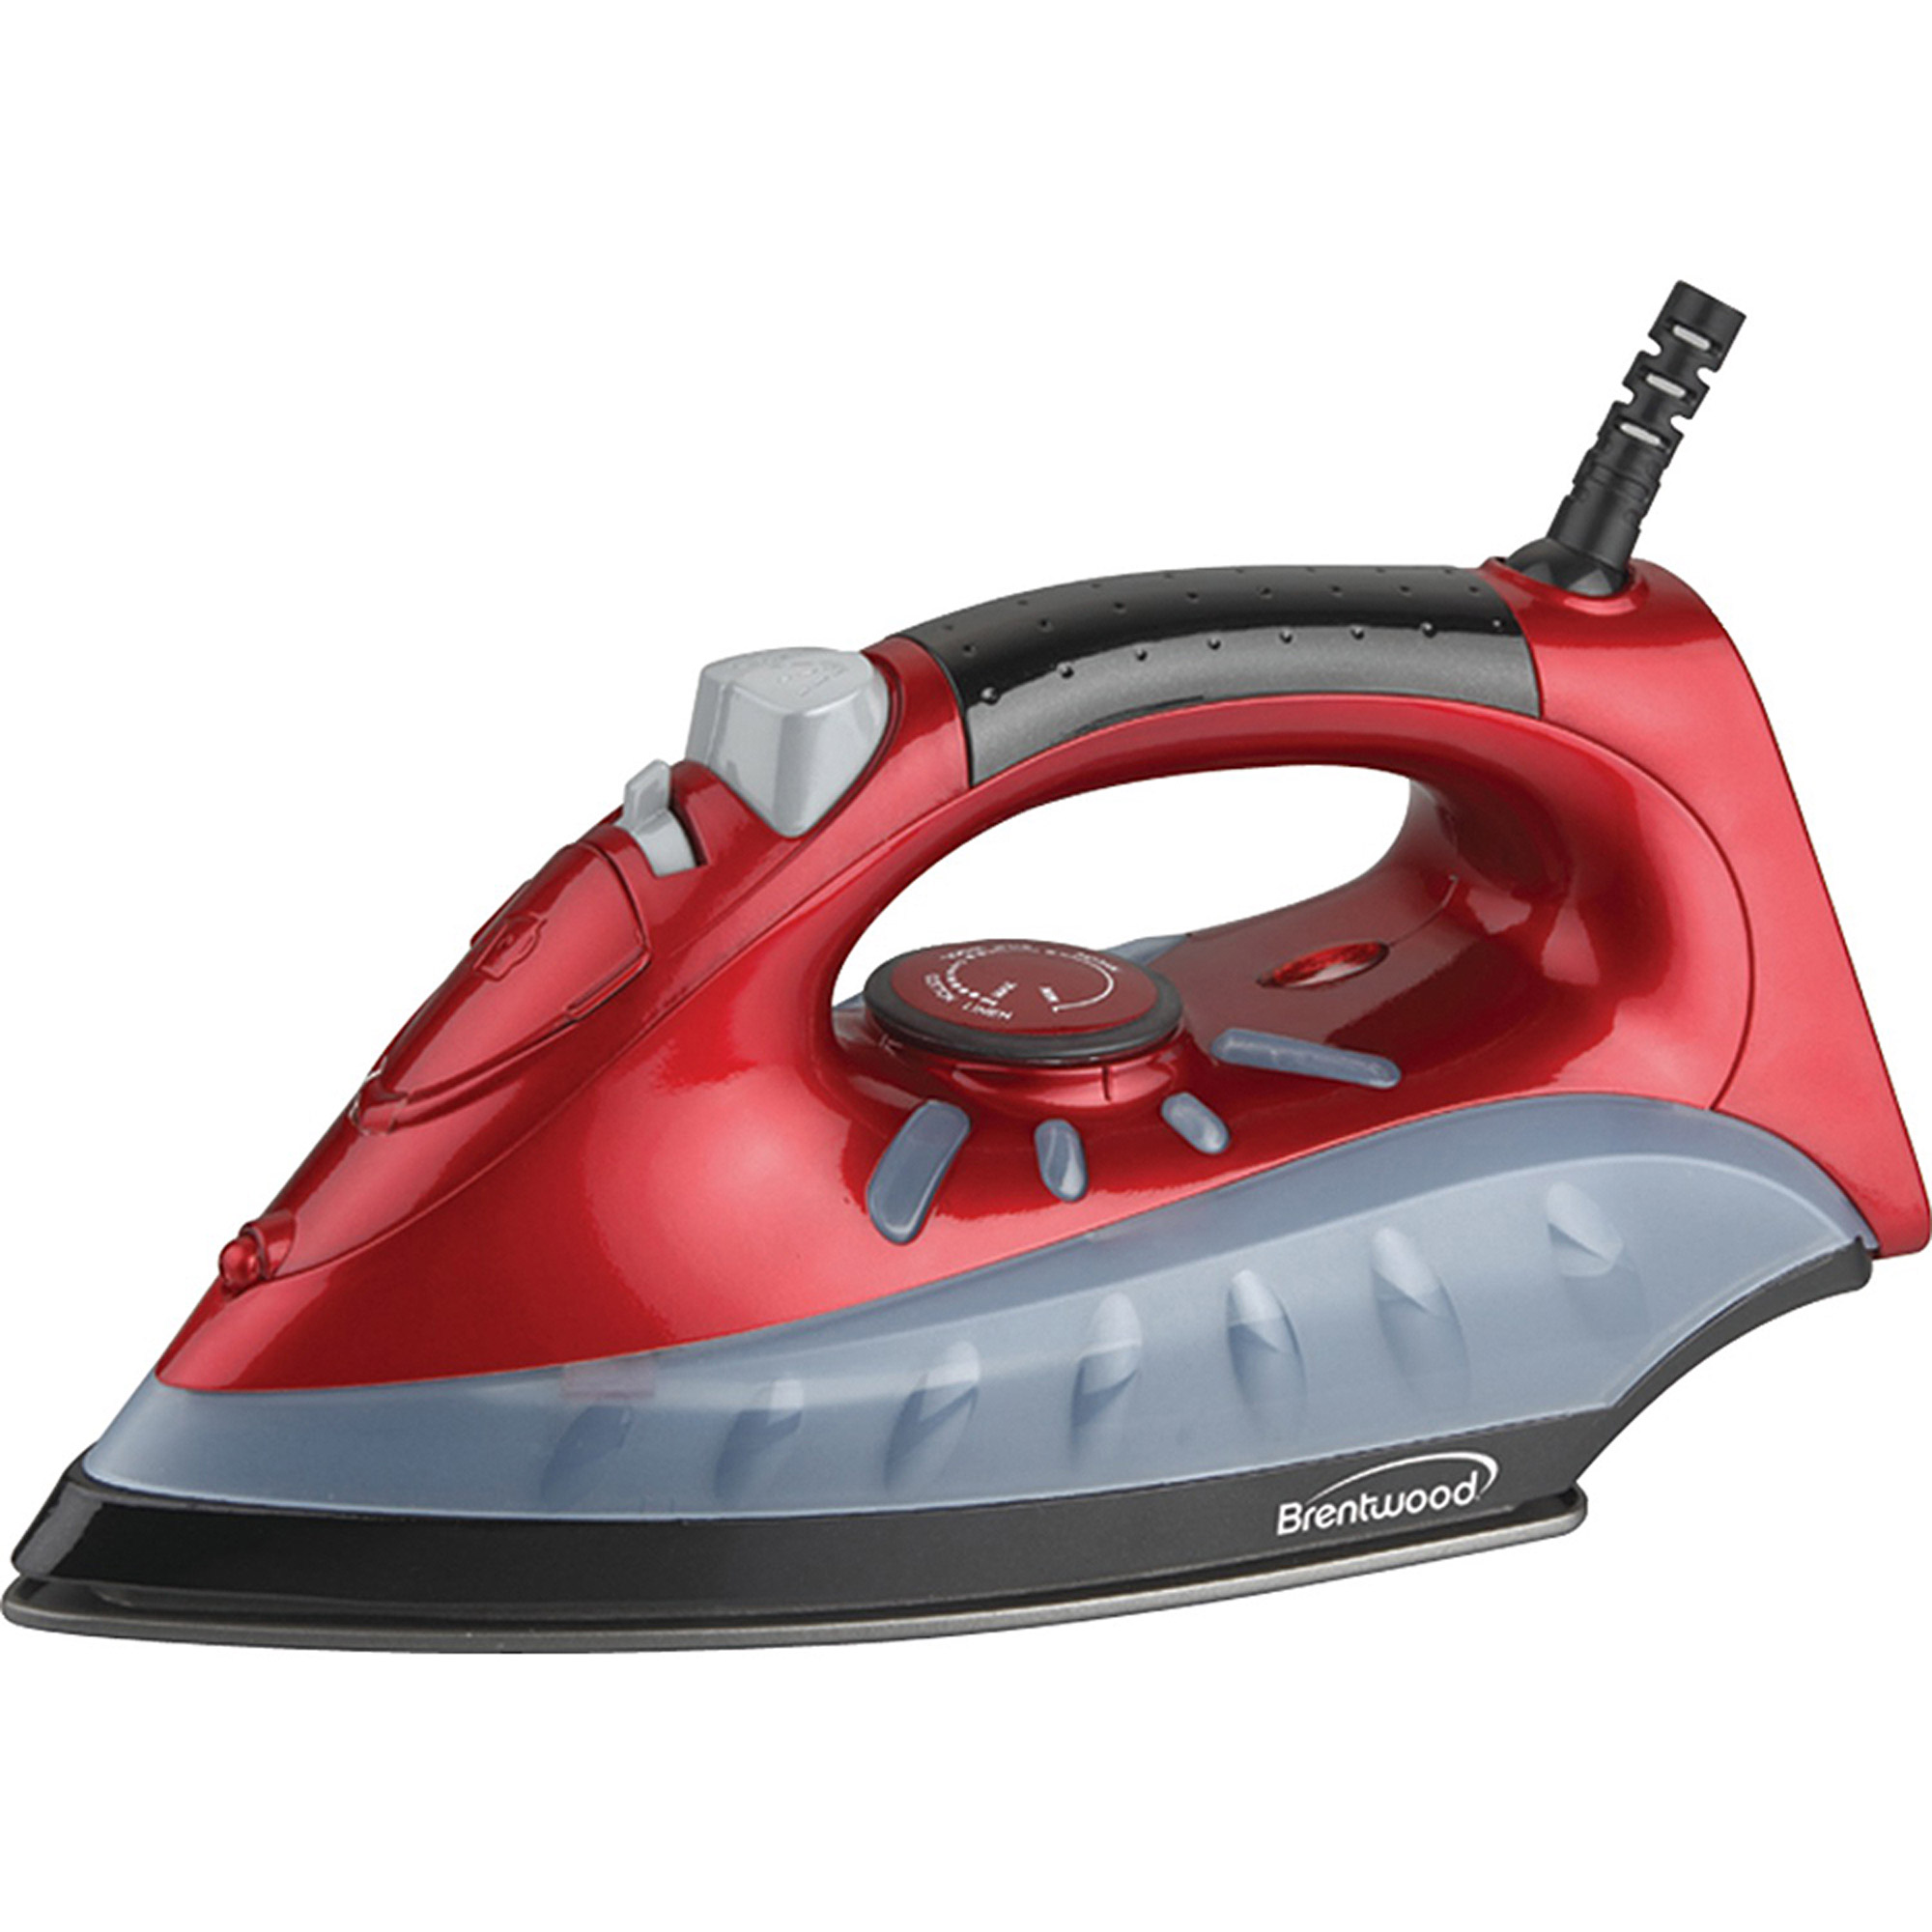 Brentwood MPI-61 Non-Stick Steam/Dry Spray Iron, Red